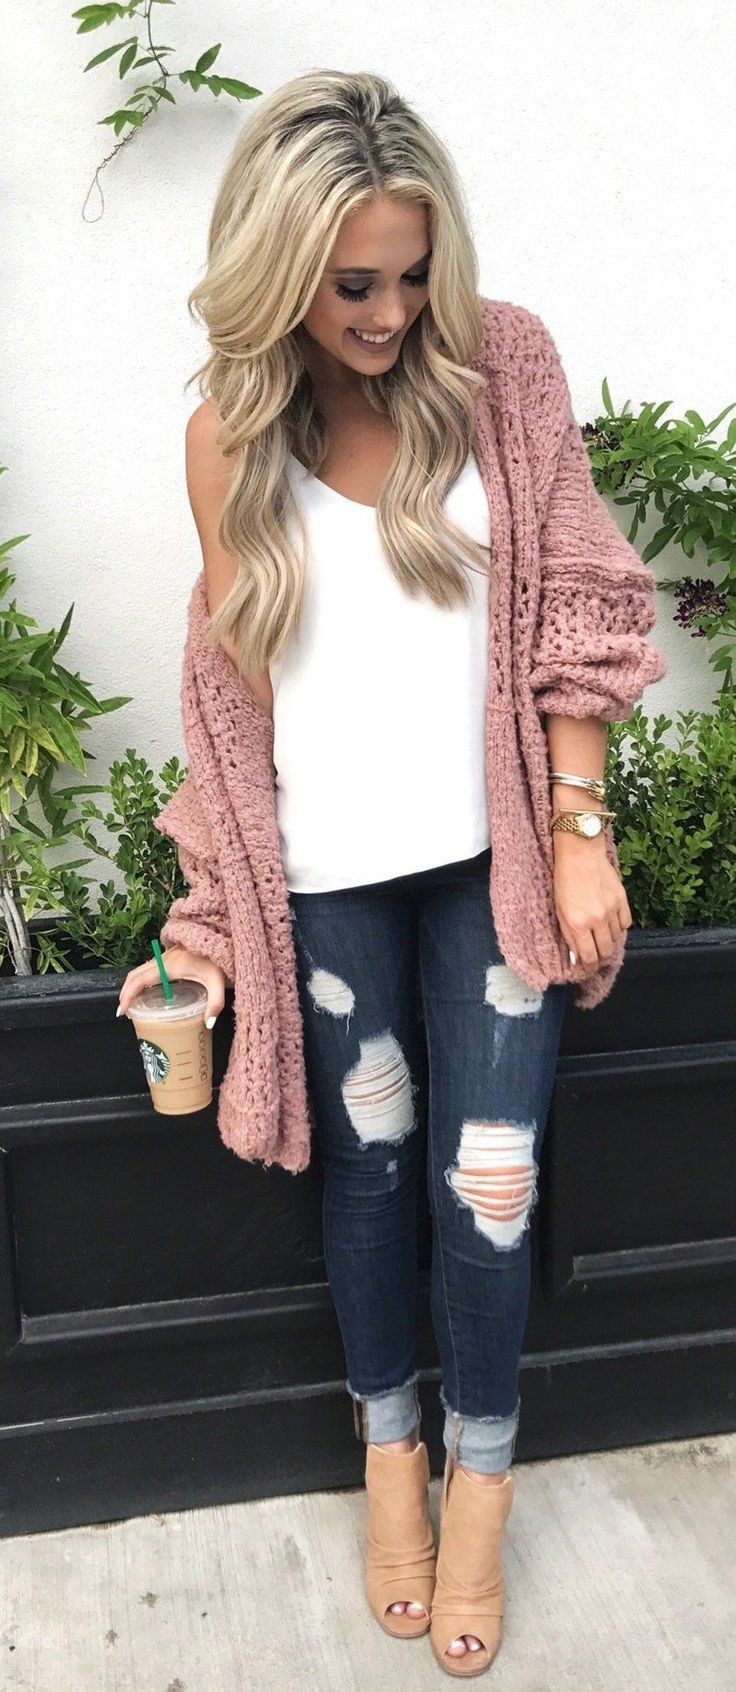 #winter #outfits women's pink knit cardigan, white top, blue distressed skinny jeans, and brown peep-toe heeled booties